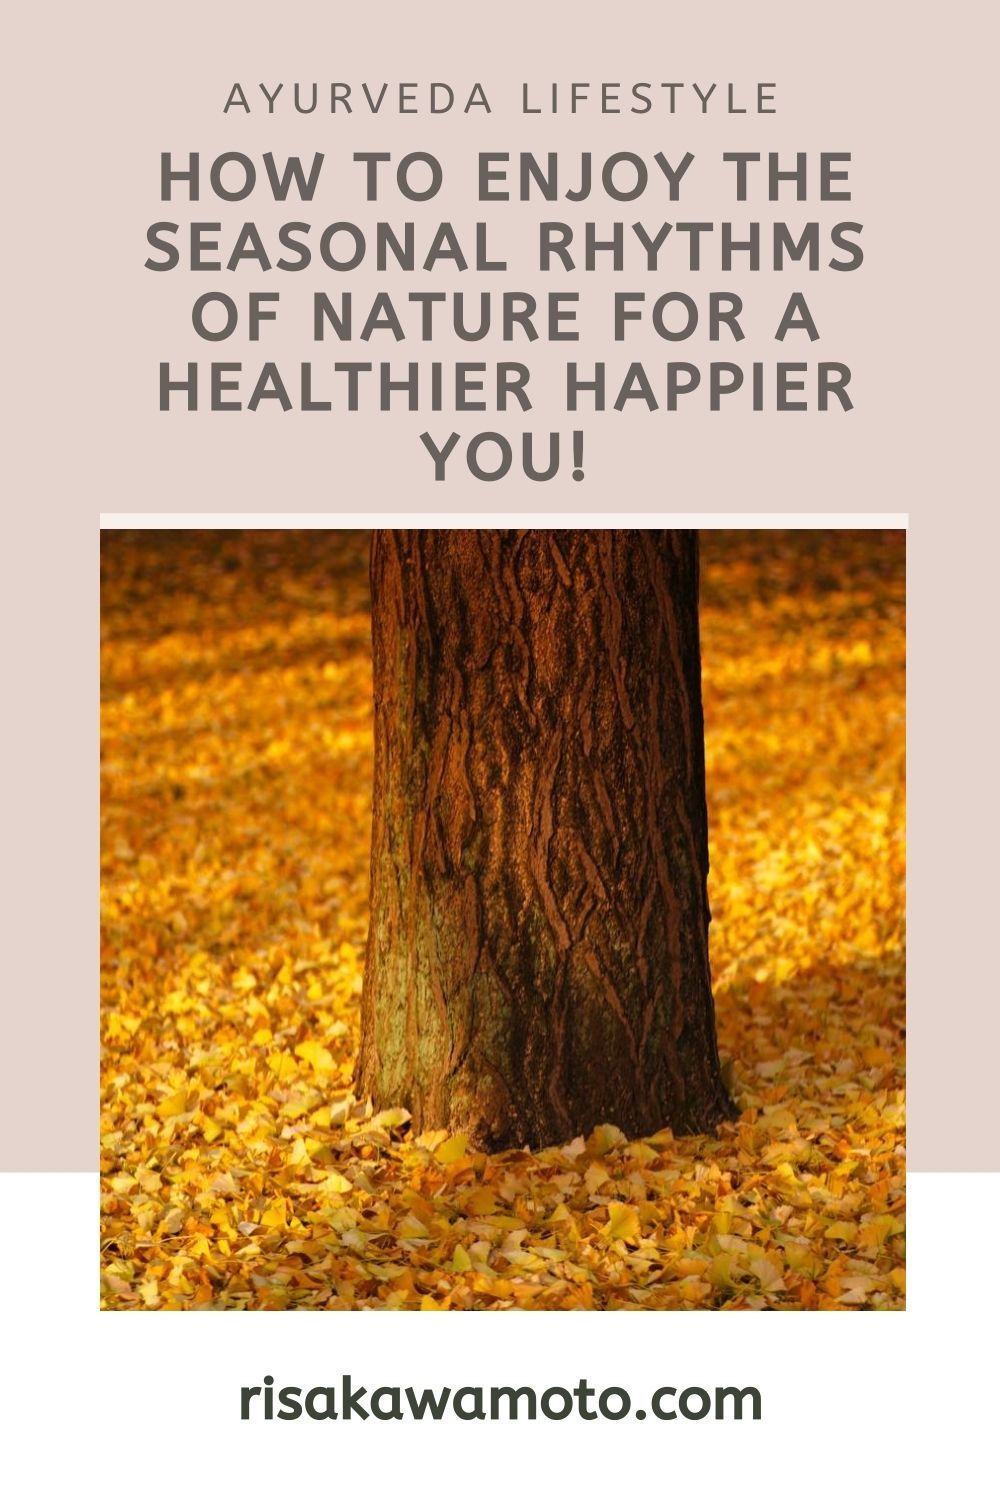 How to Enjoy the Seasonal Rhythms of Nature for a Healthier Happier You